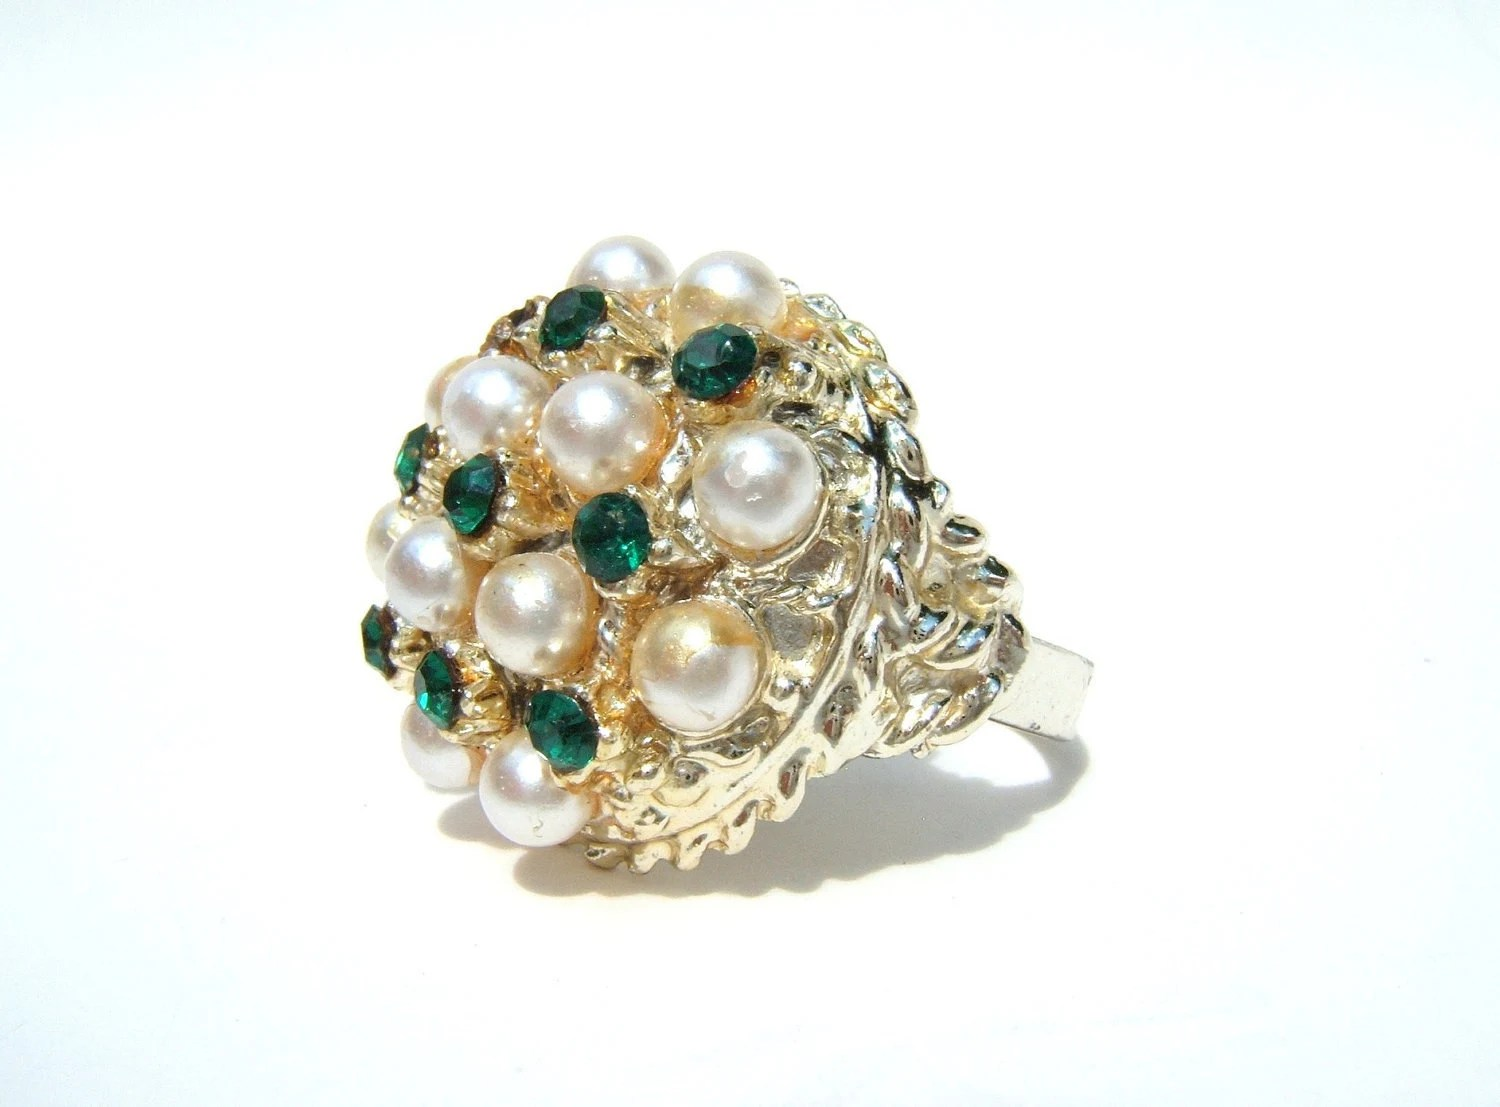 Vintage Ring - Size 10 1/2 - 1980s